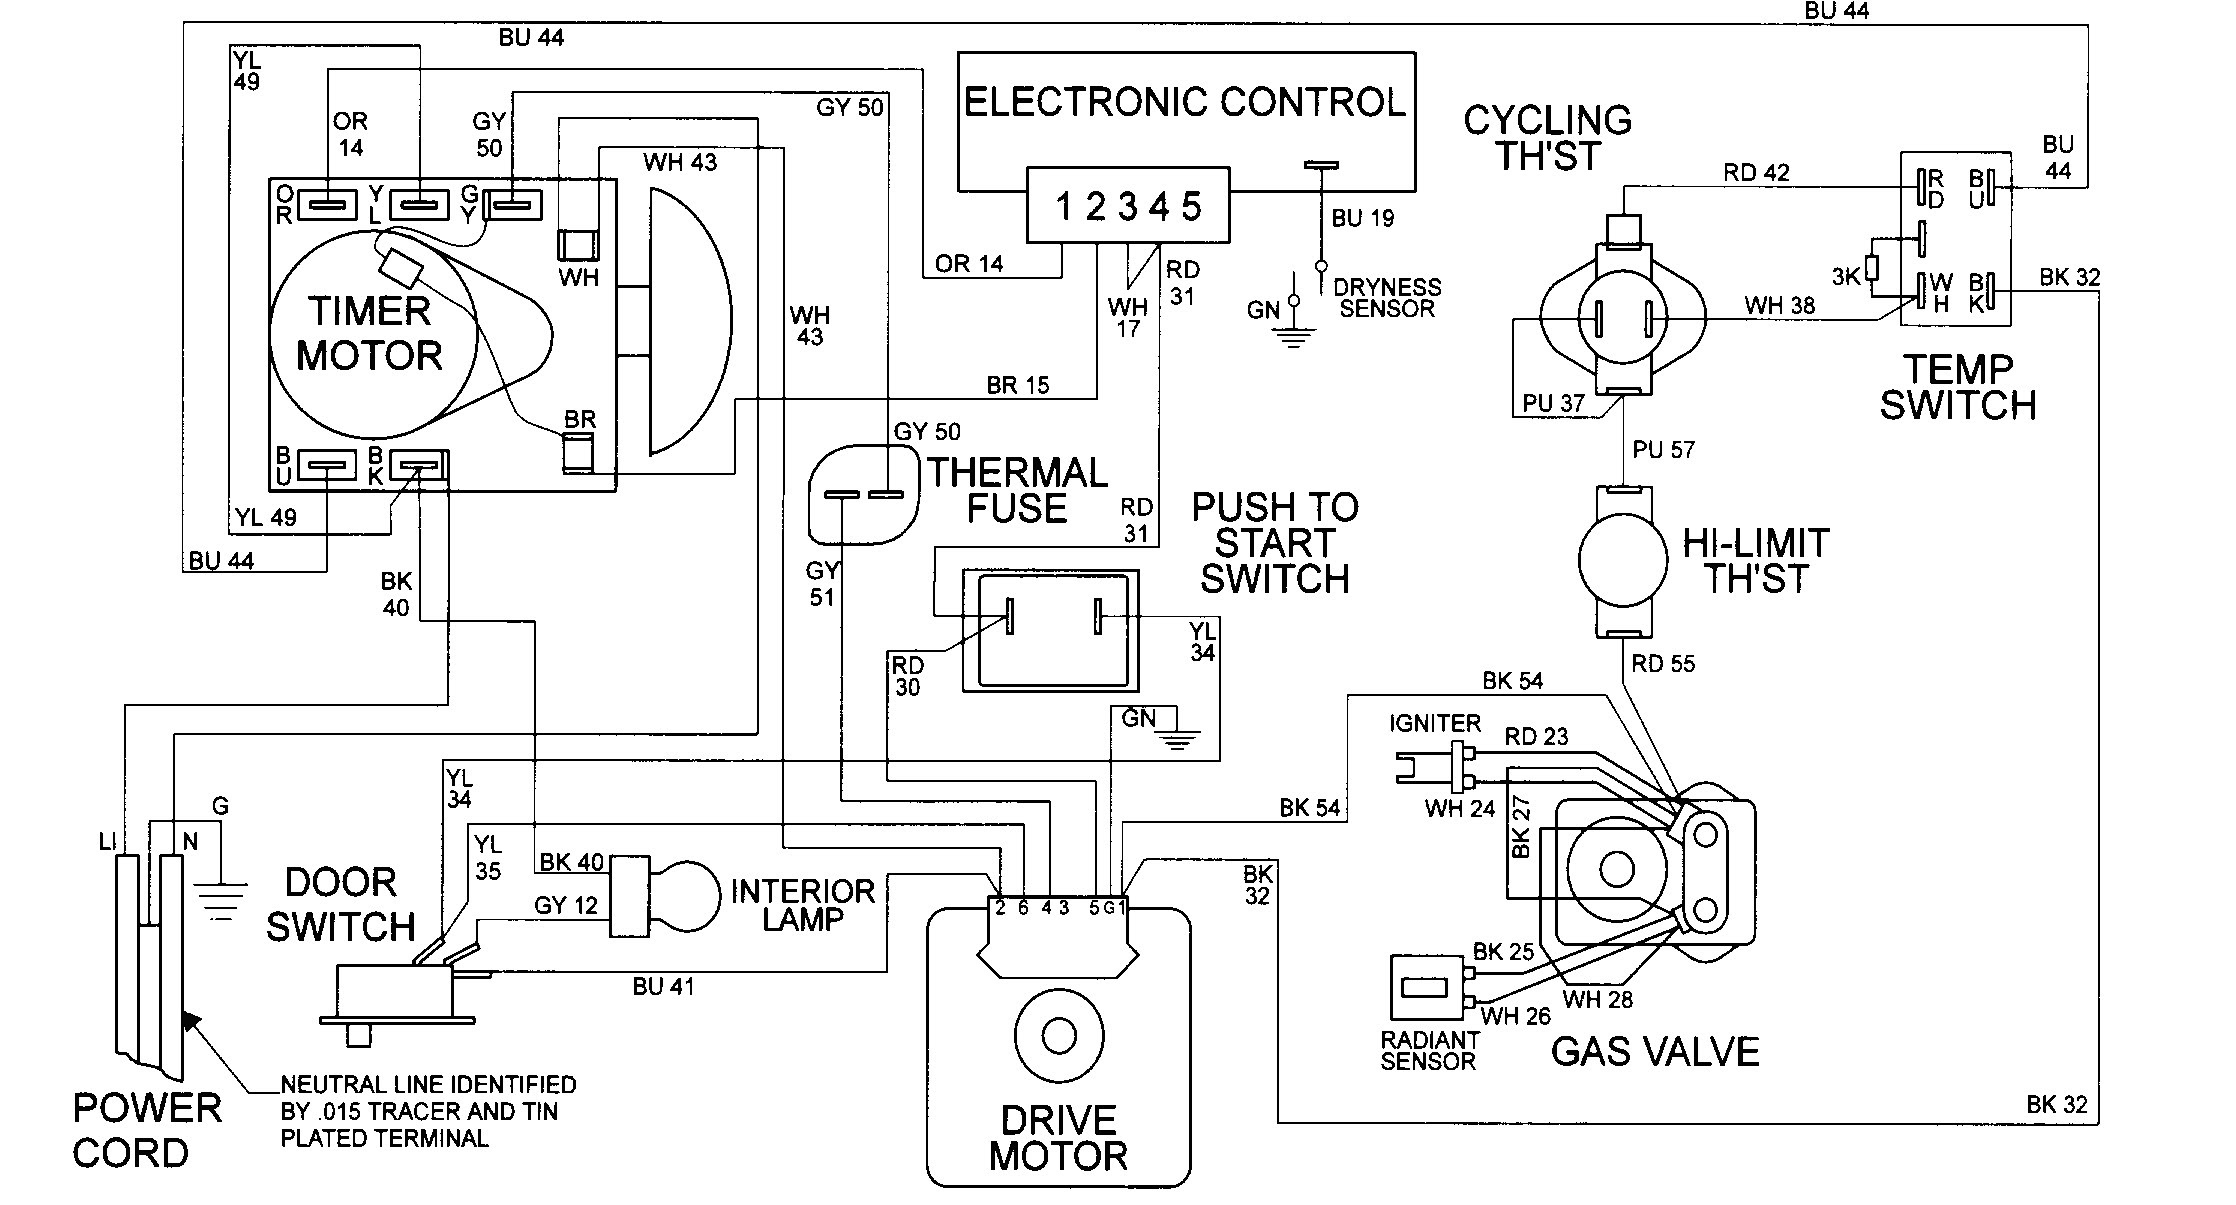 Wiring Diagram For Roper Lawn MowerFuse Wiring